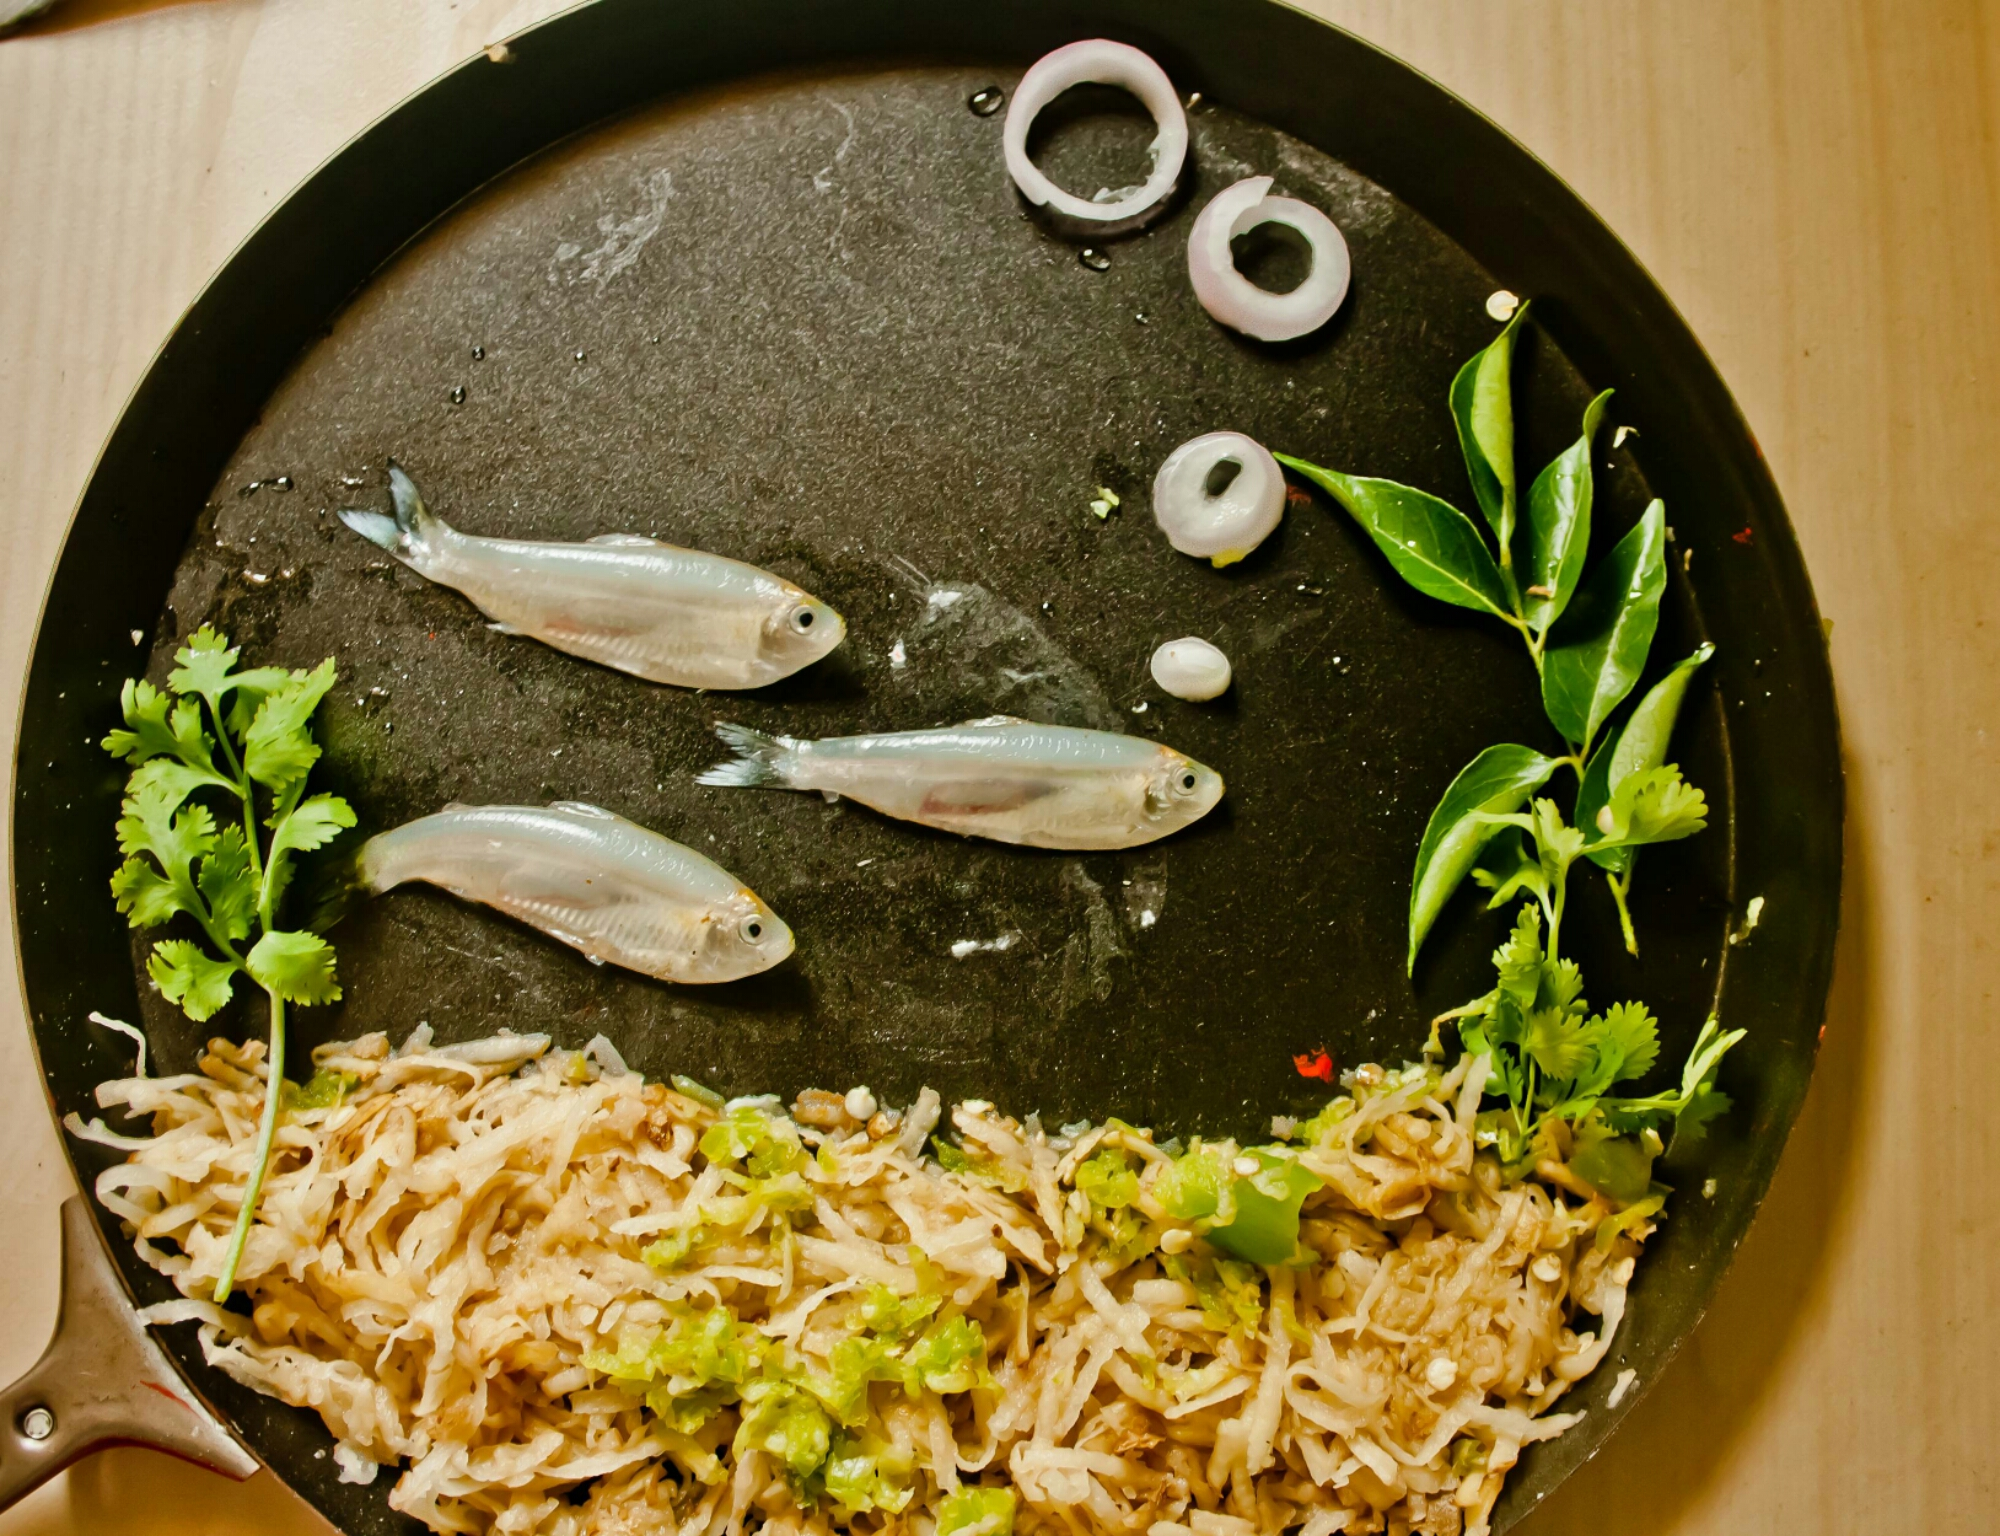 Fish food art nveam for Fish as food